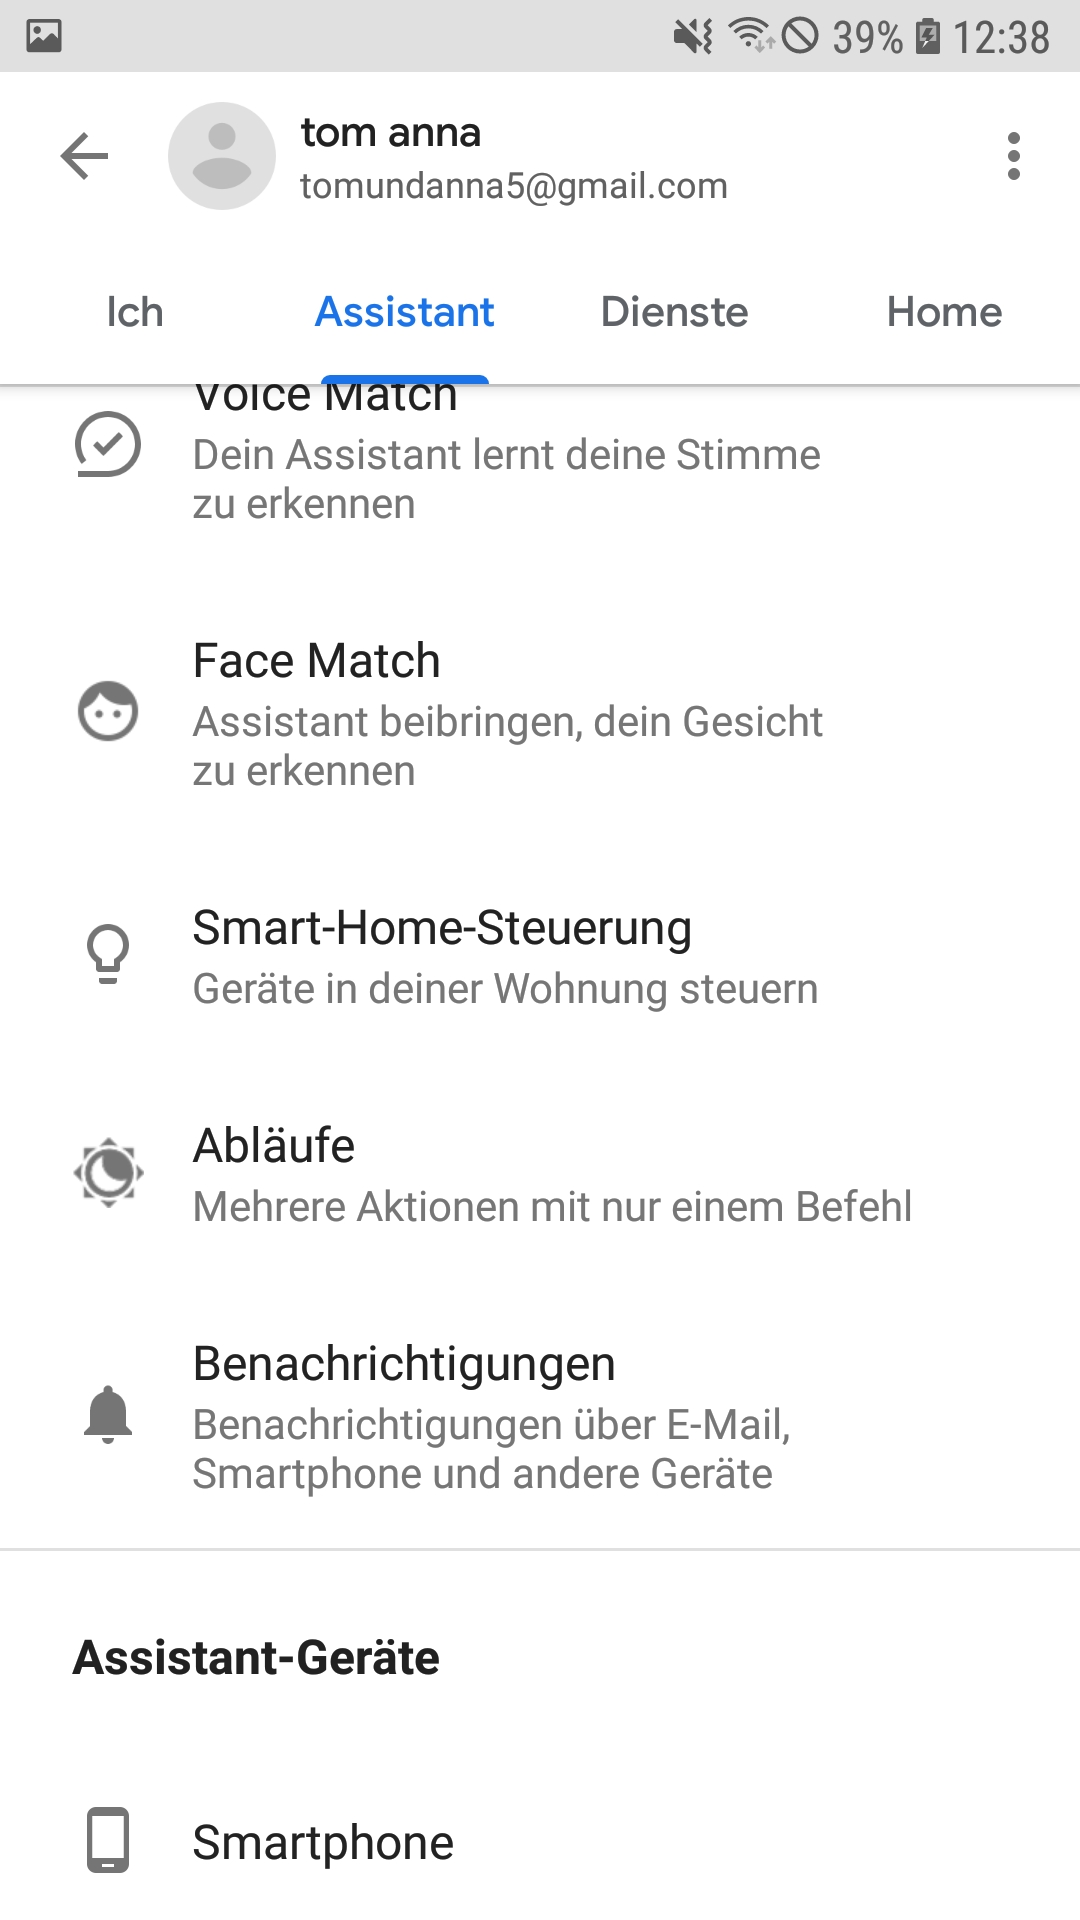 Screenshot_20200624-123841_Google_-_Kopiert.jpg